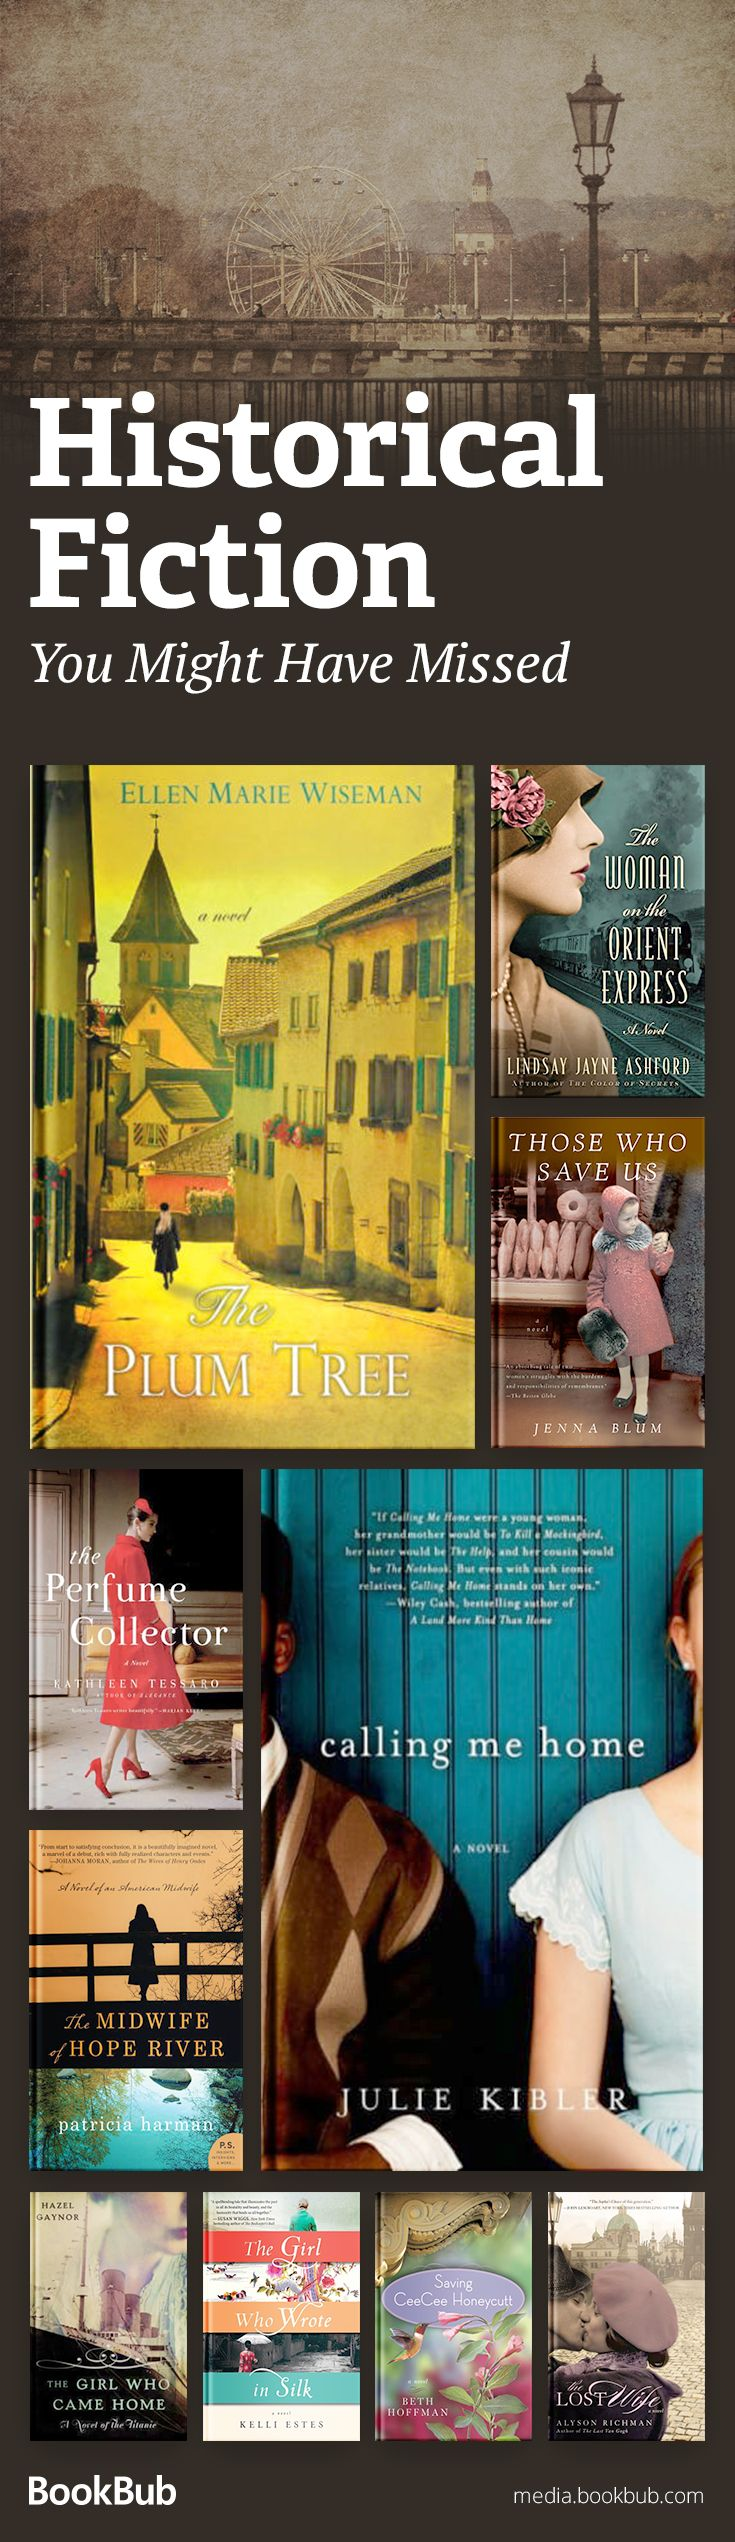 10 Widelyreviewed Historical Fiction Books You May Not Have Read Yet